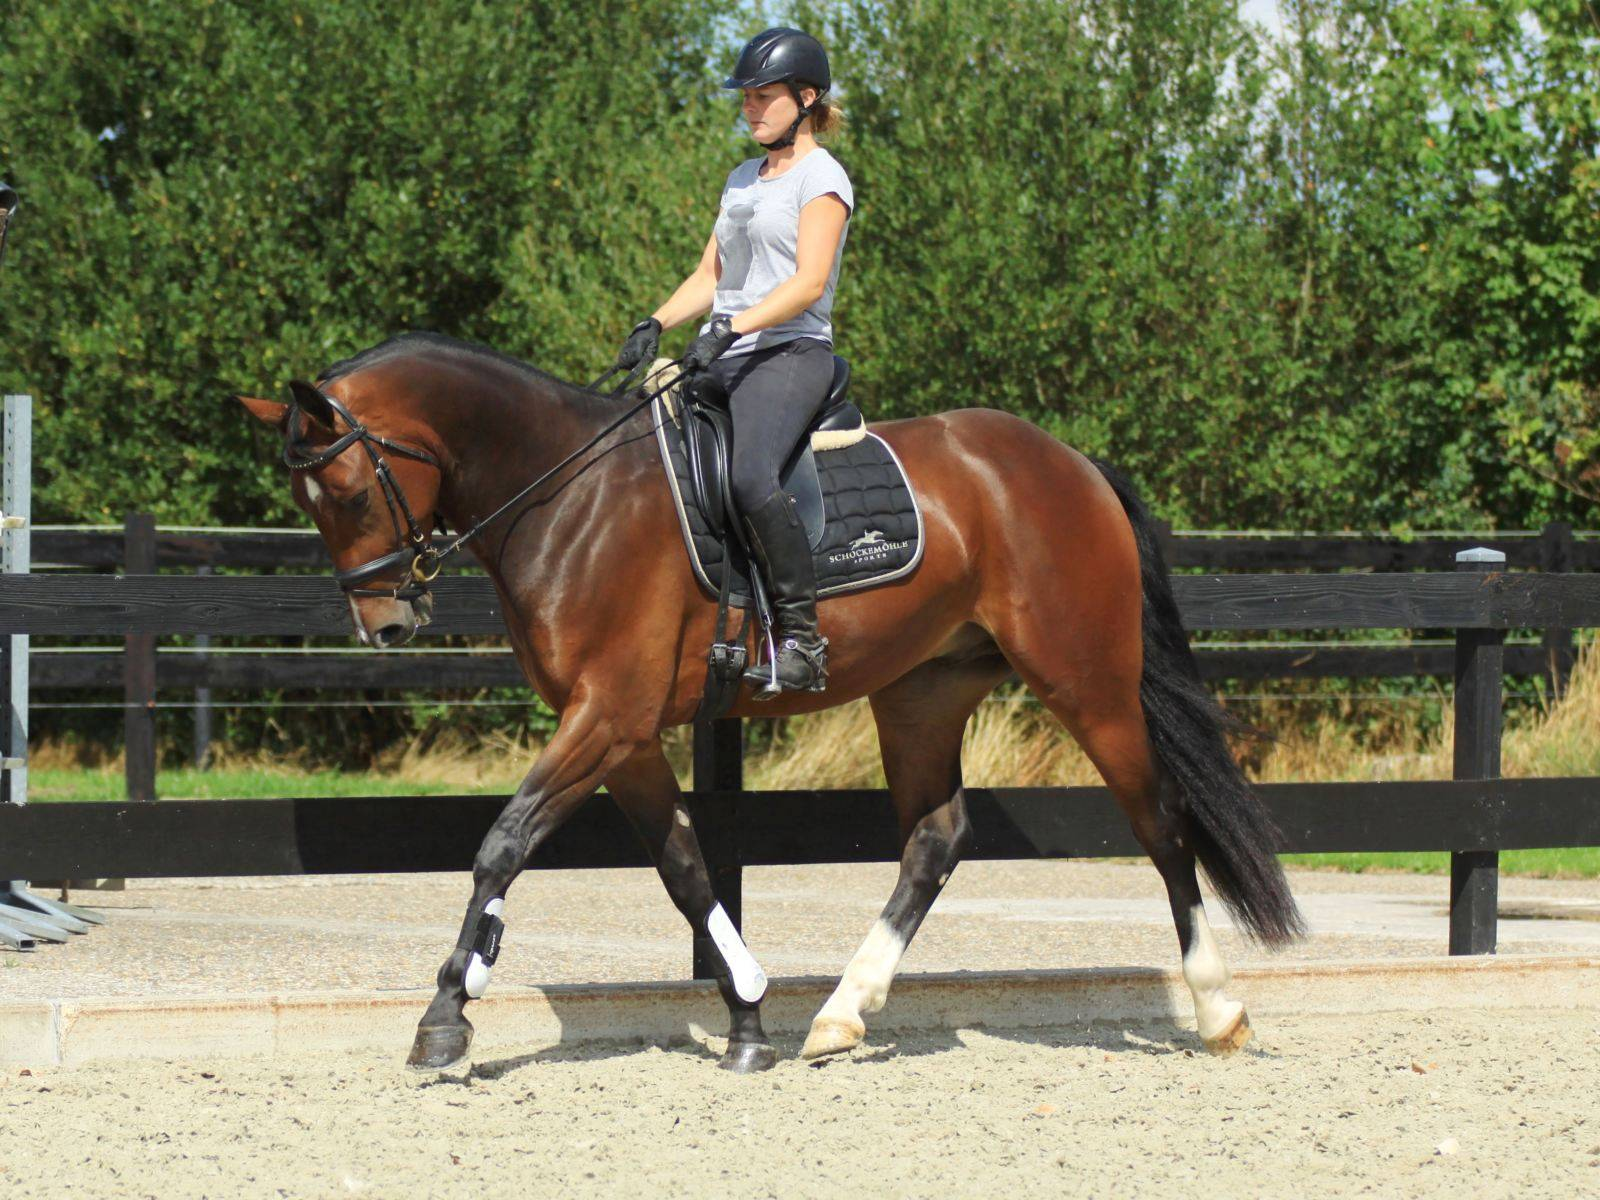 Dressage Horses for Sale New York